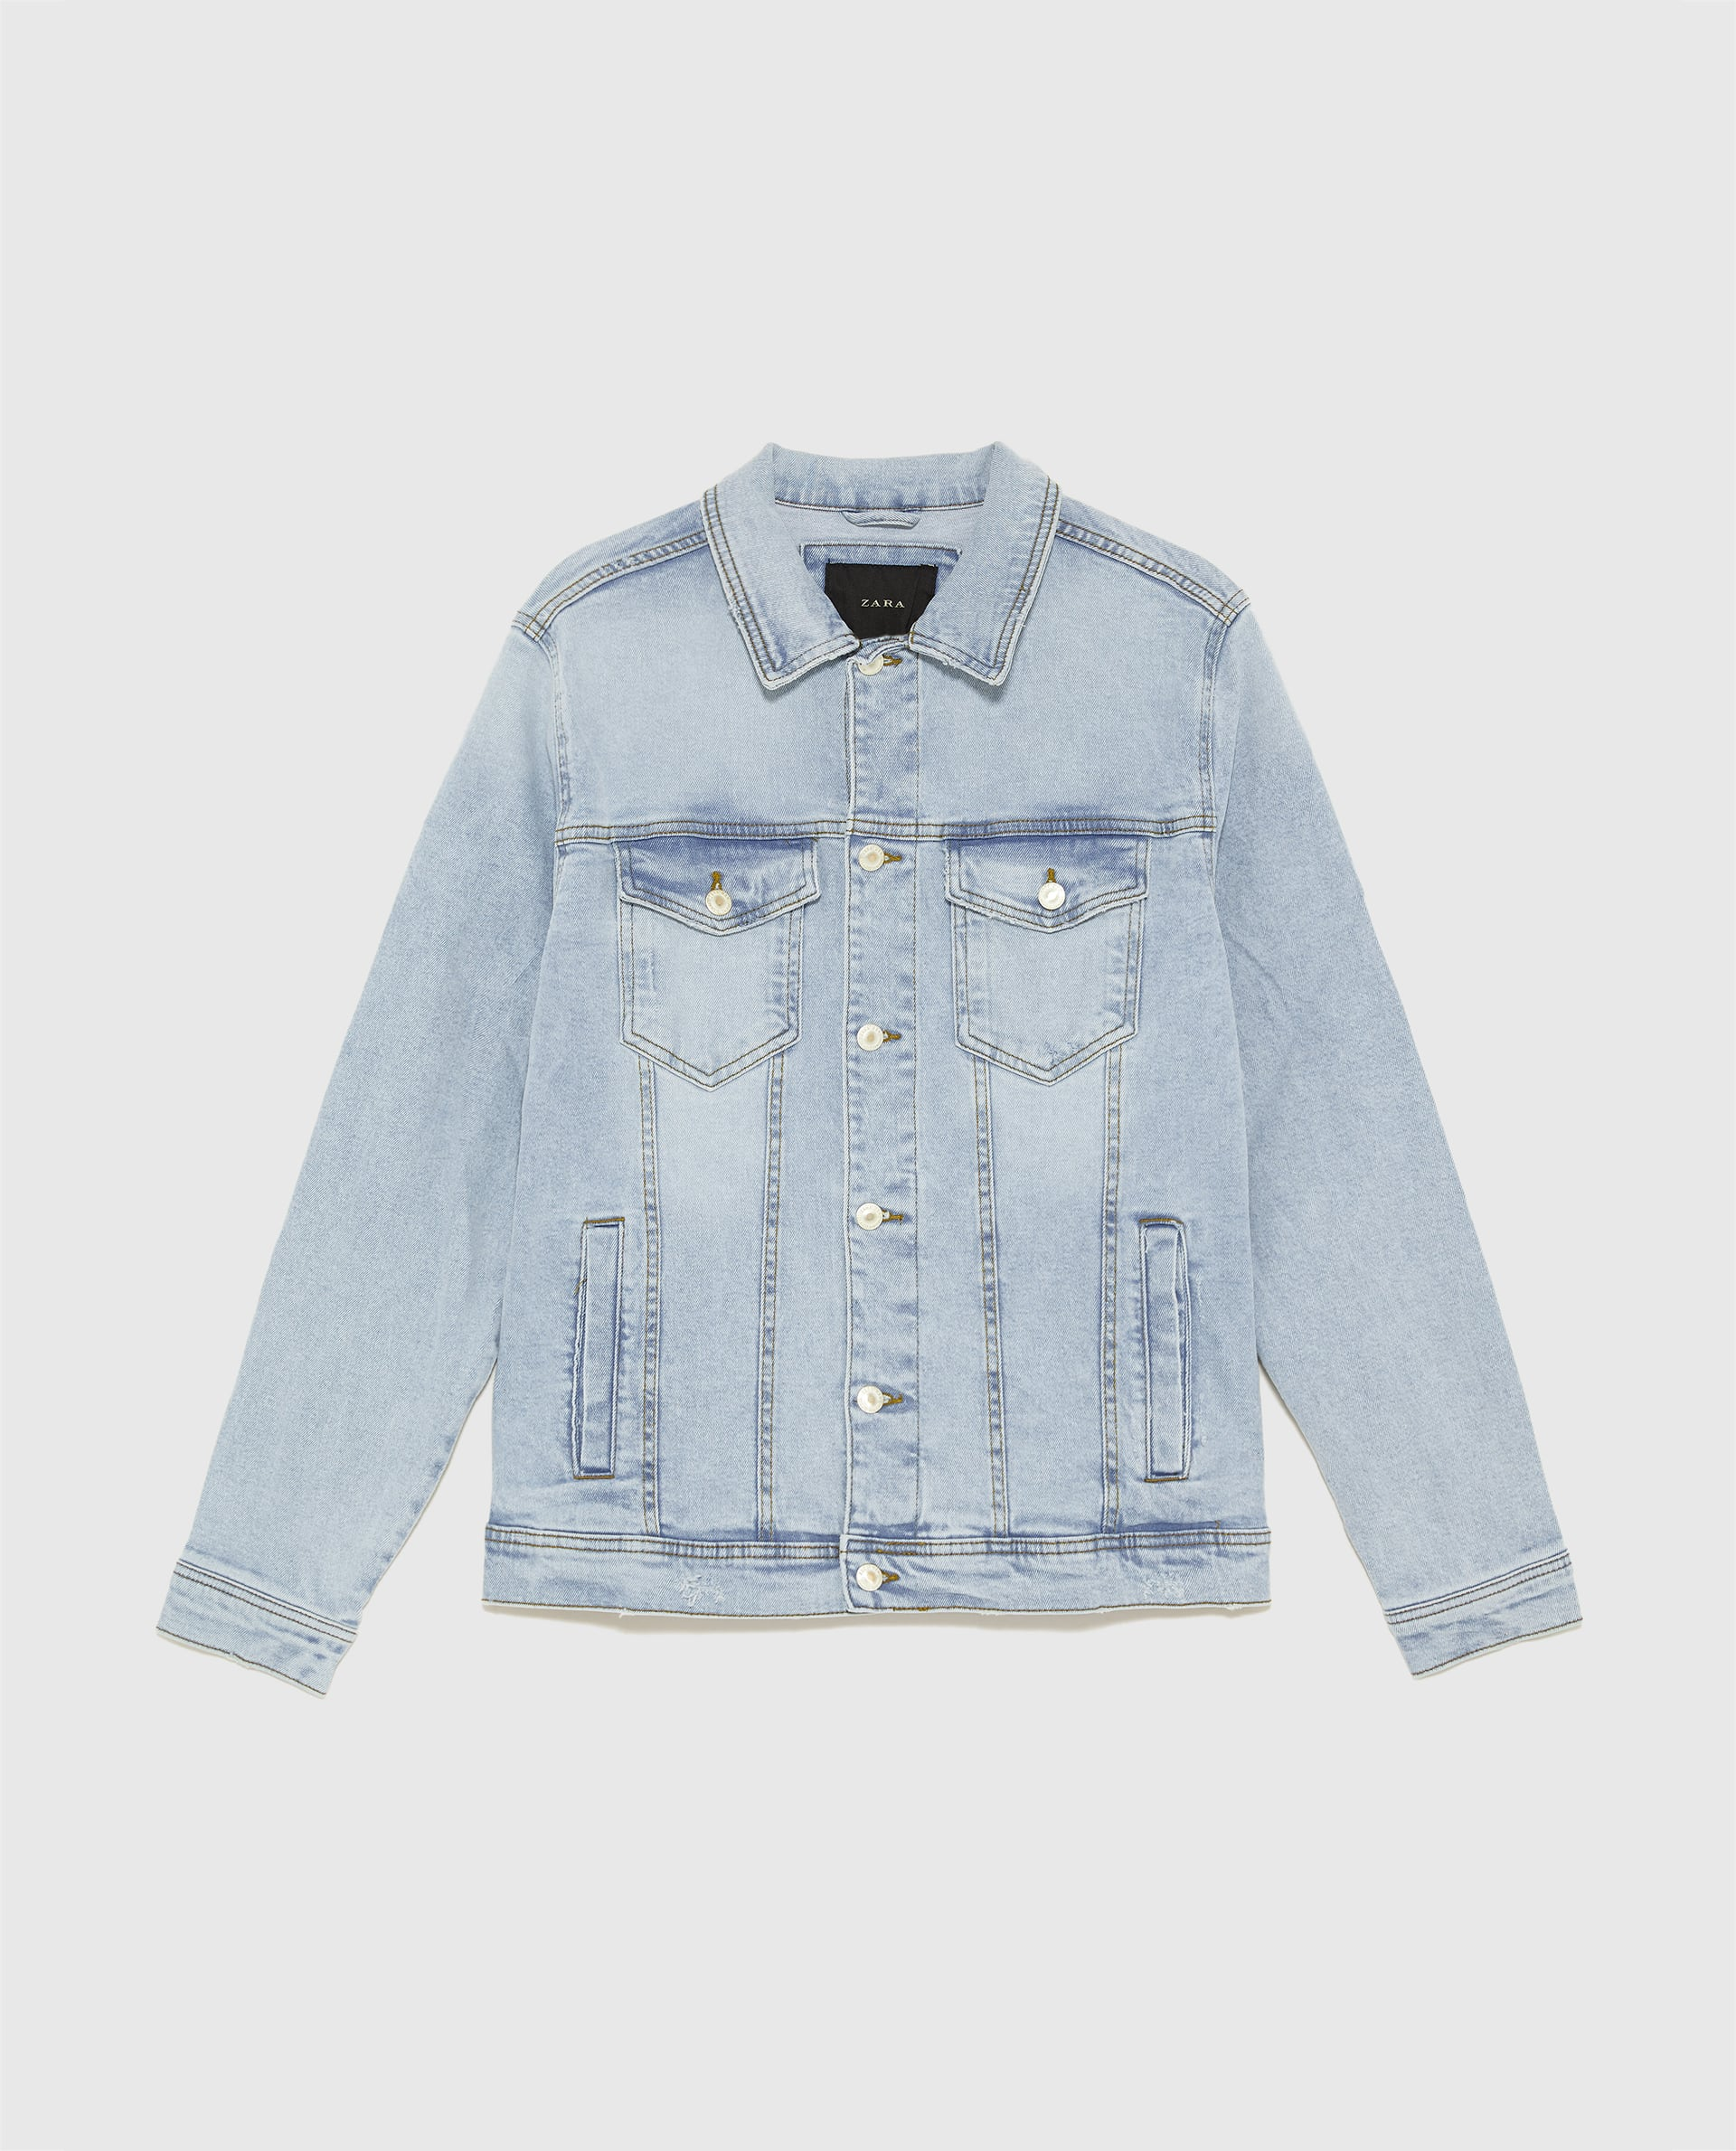 Zara Washed Denim Jacket.jpg